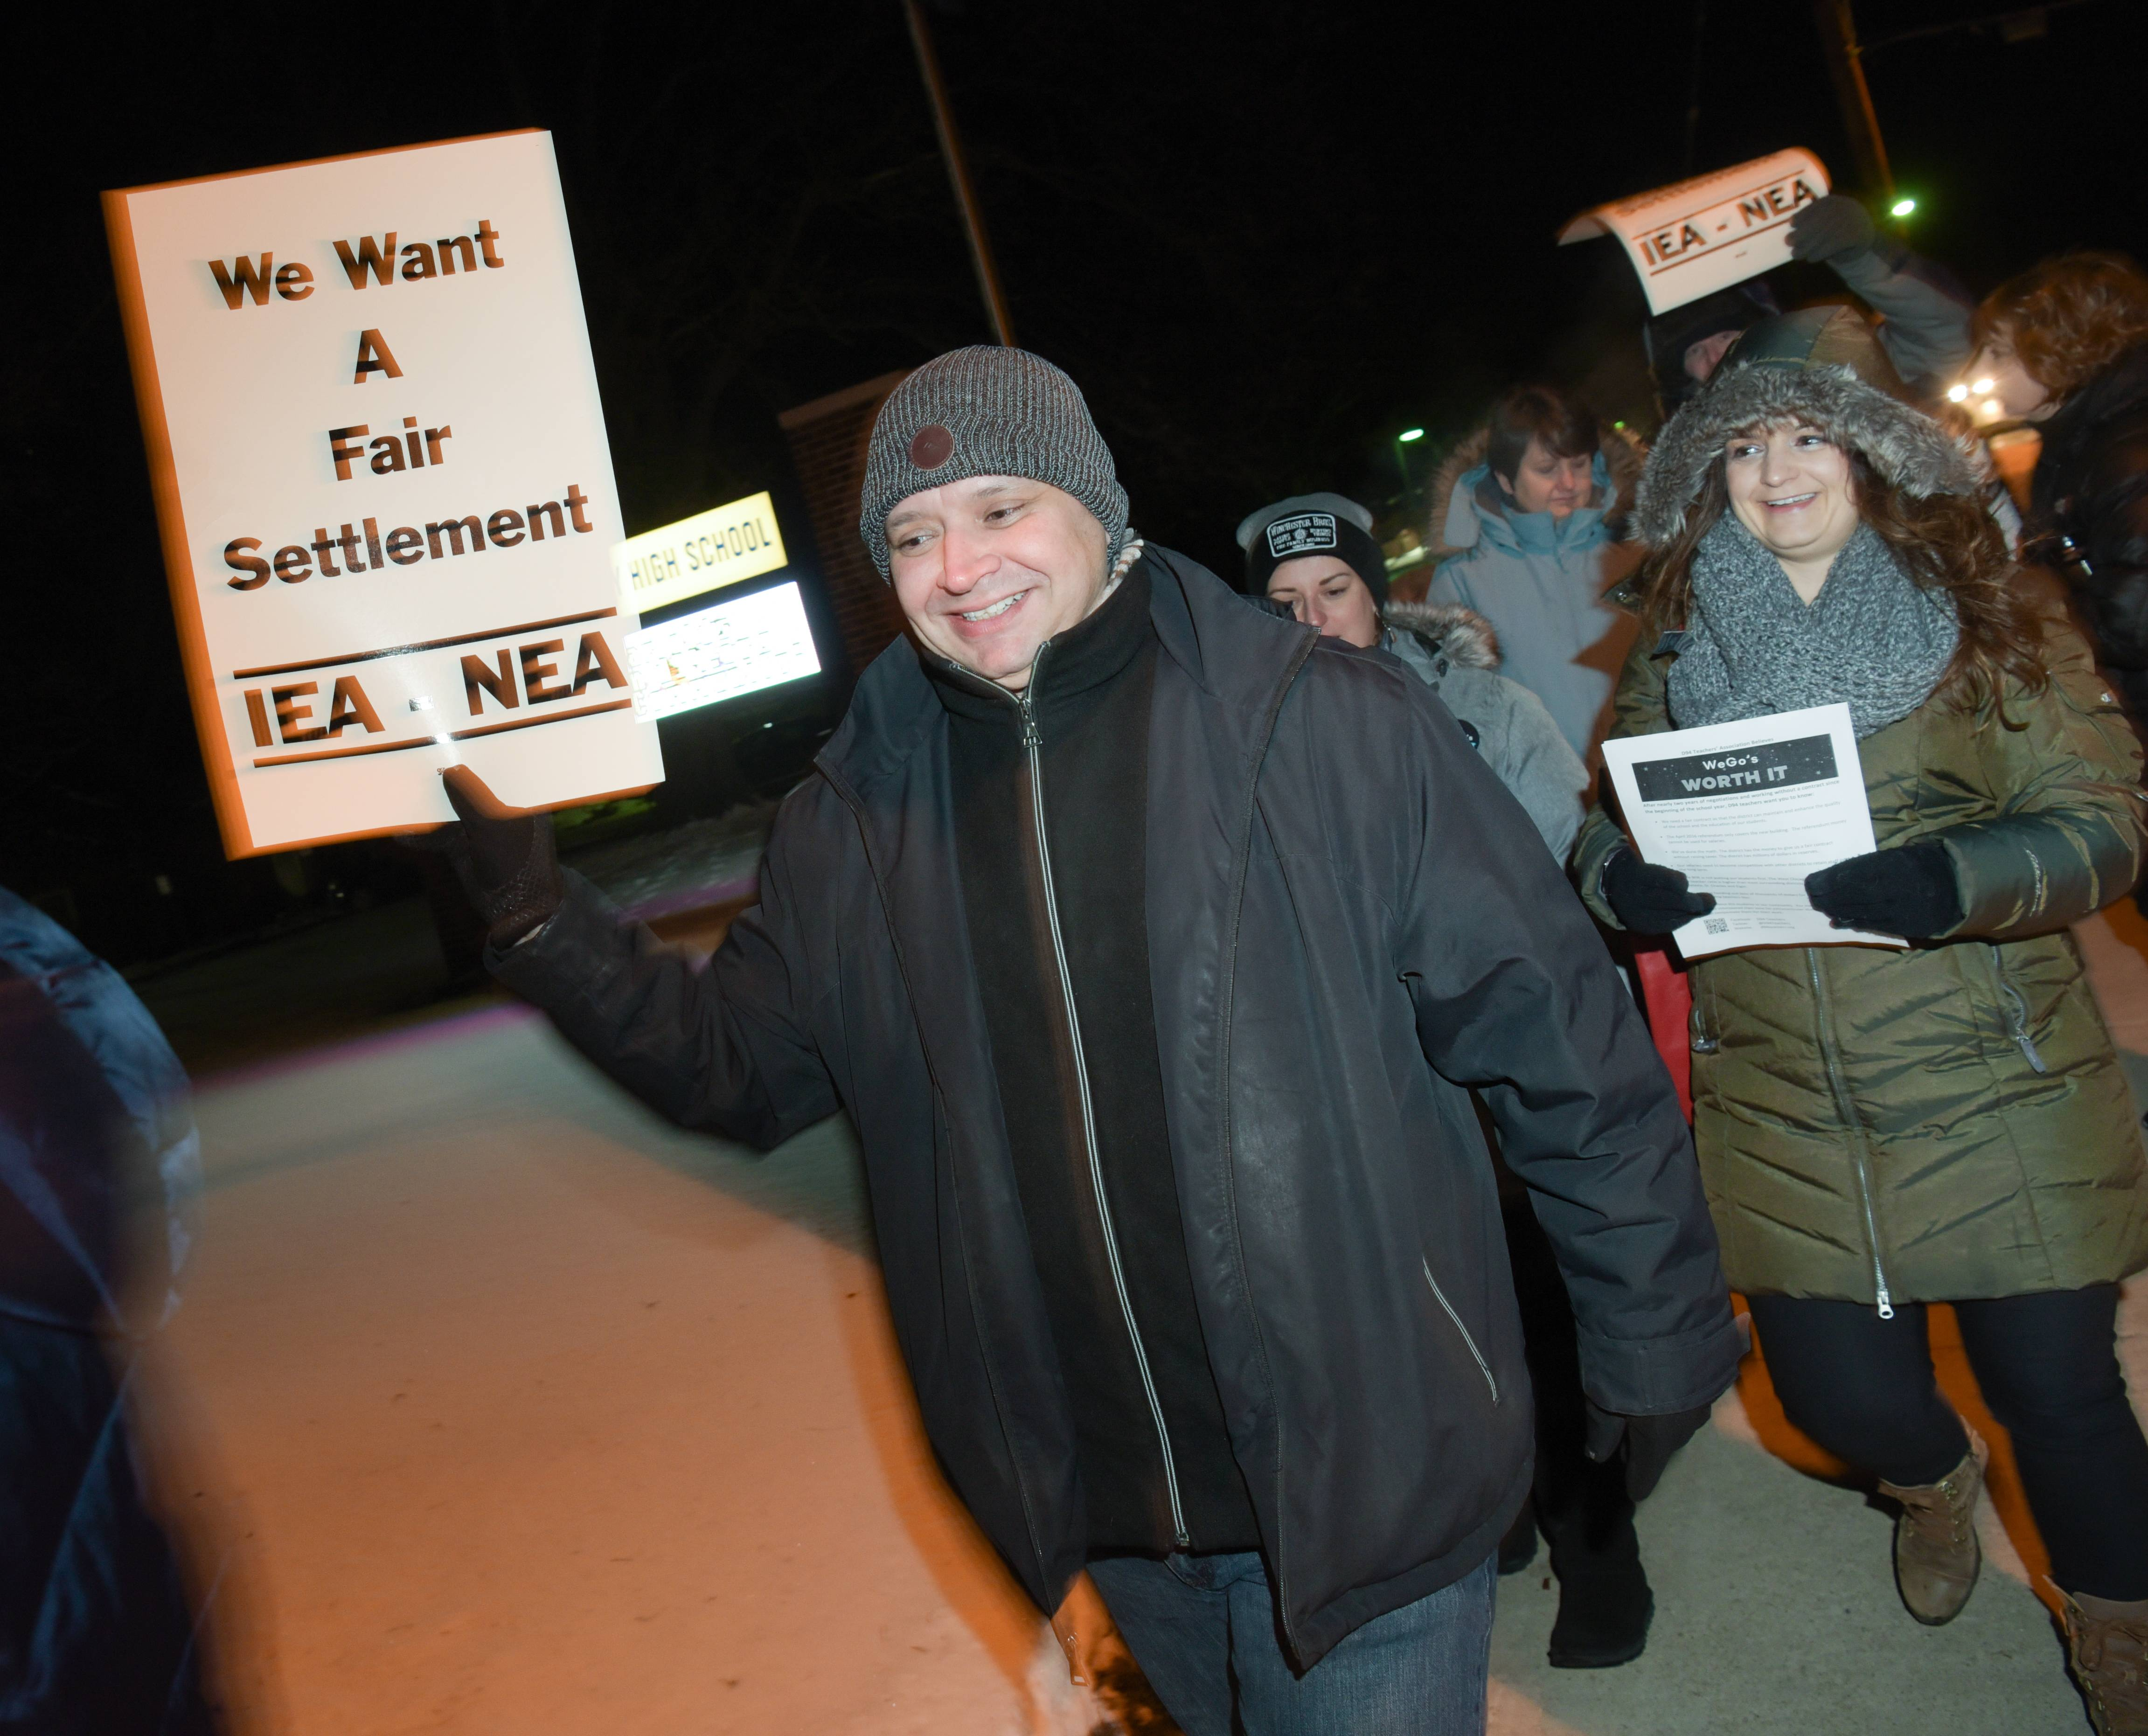 West Chicago High School social worker Bill Bautista marches outside West Chicago High School during an informational picket before Tuesday's school board meeting.